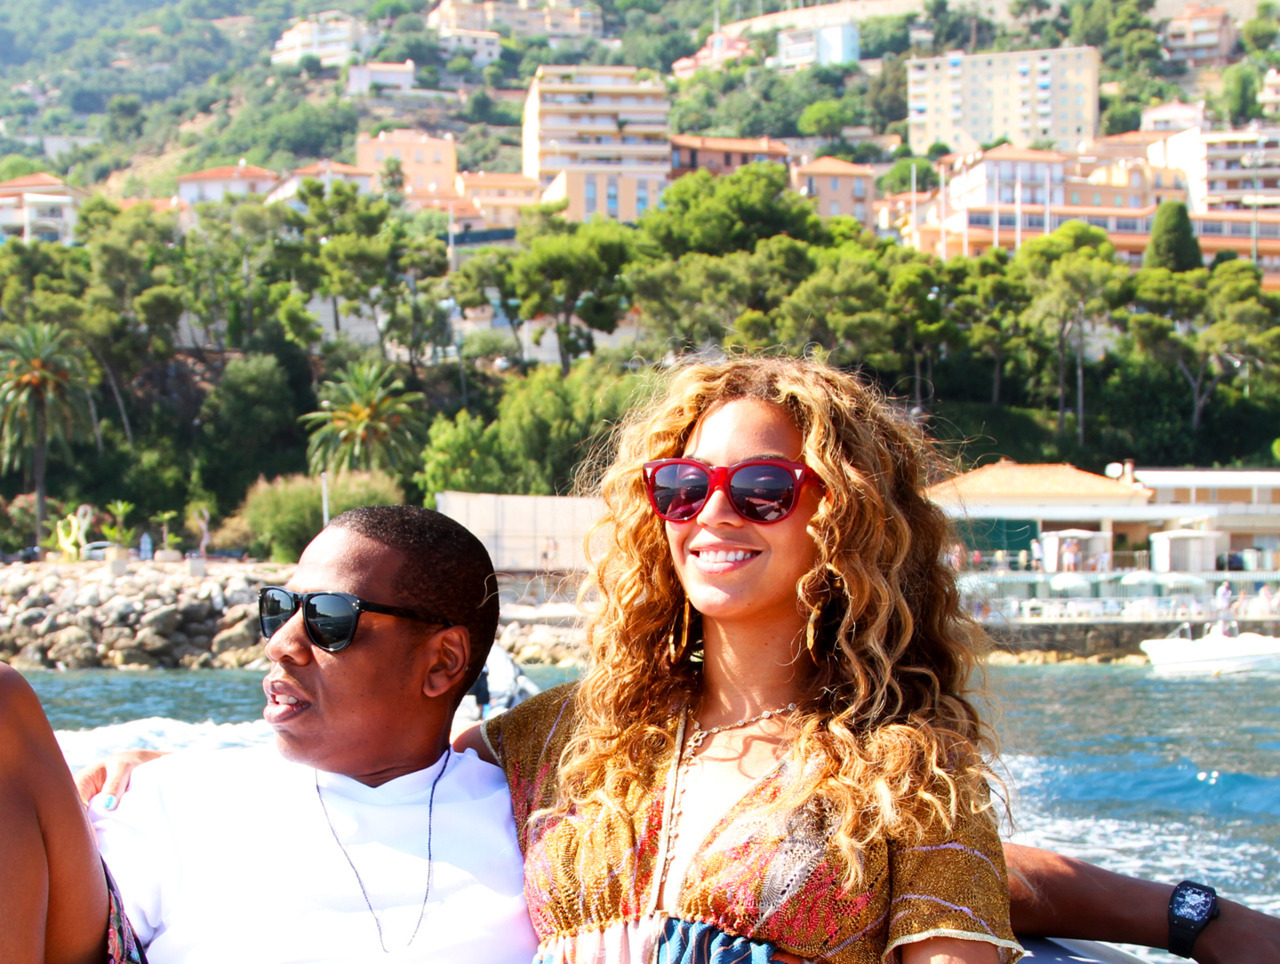 Beyonce and Jay Z Tumblr_m1xiip3xNQ1rqgjz2o1_1280